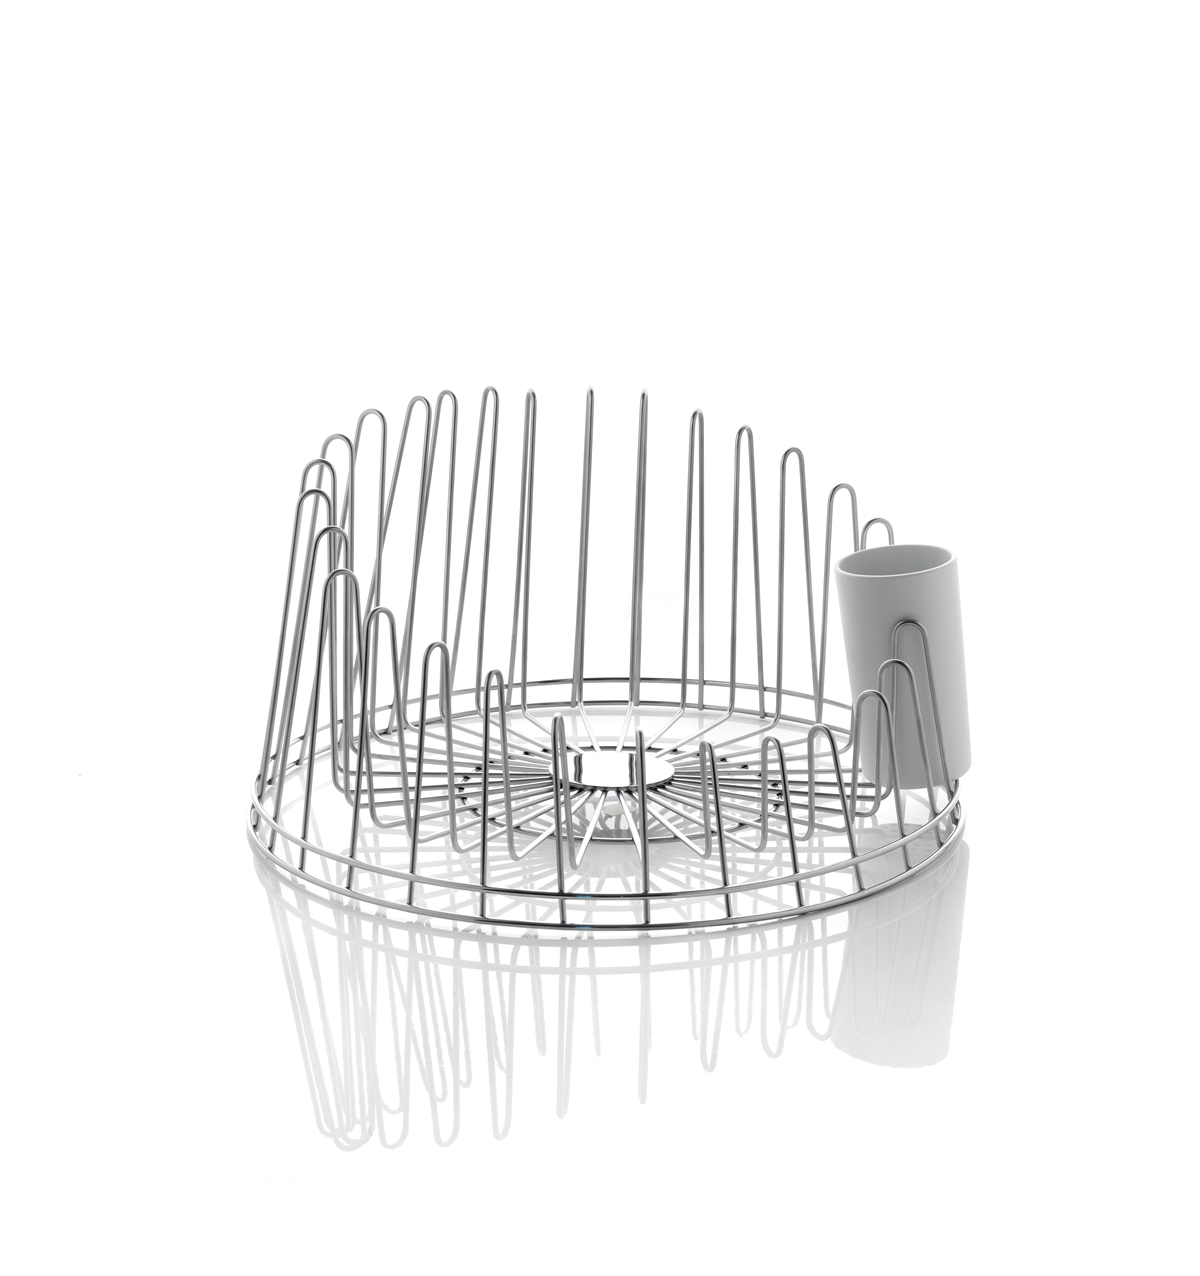 Alessi-A Tempo Dish rack in 18/10 stainless steel and thermoplastic resin